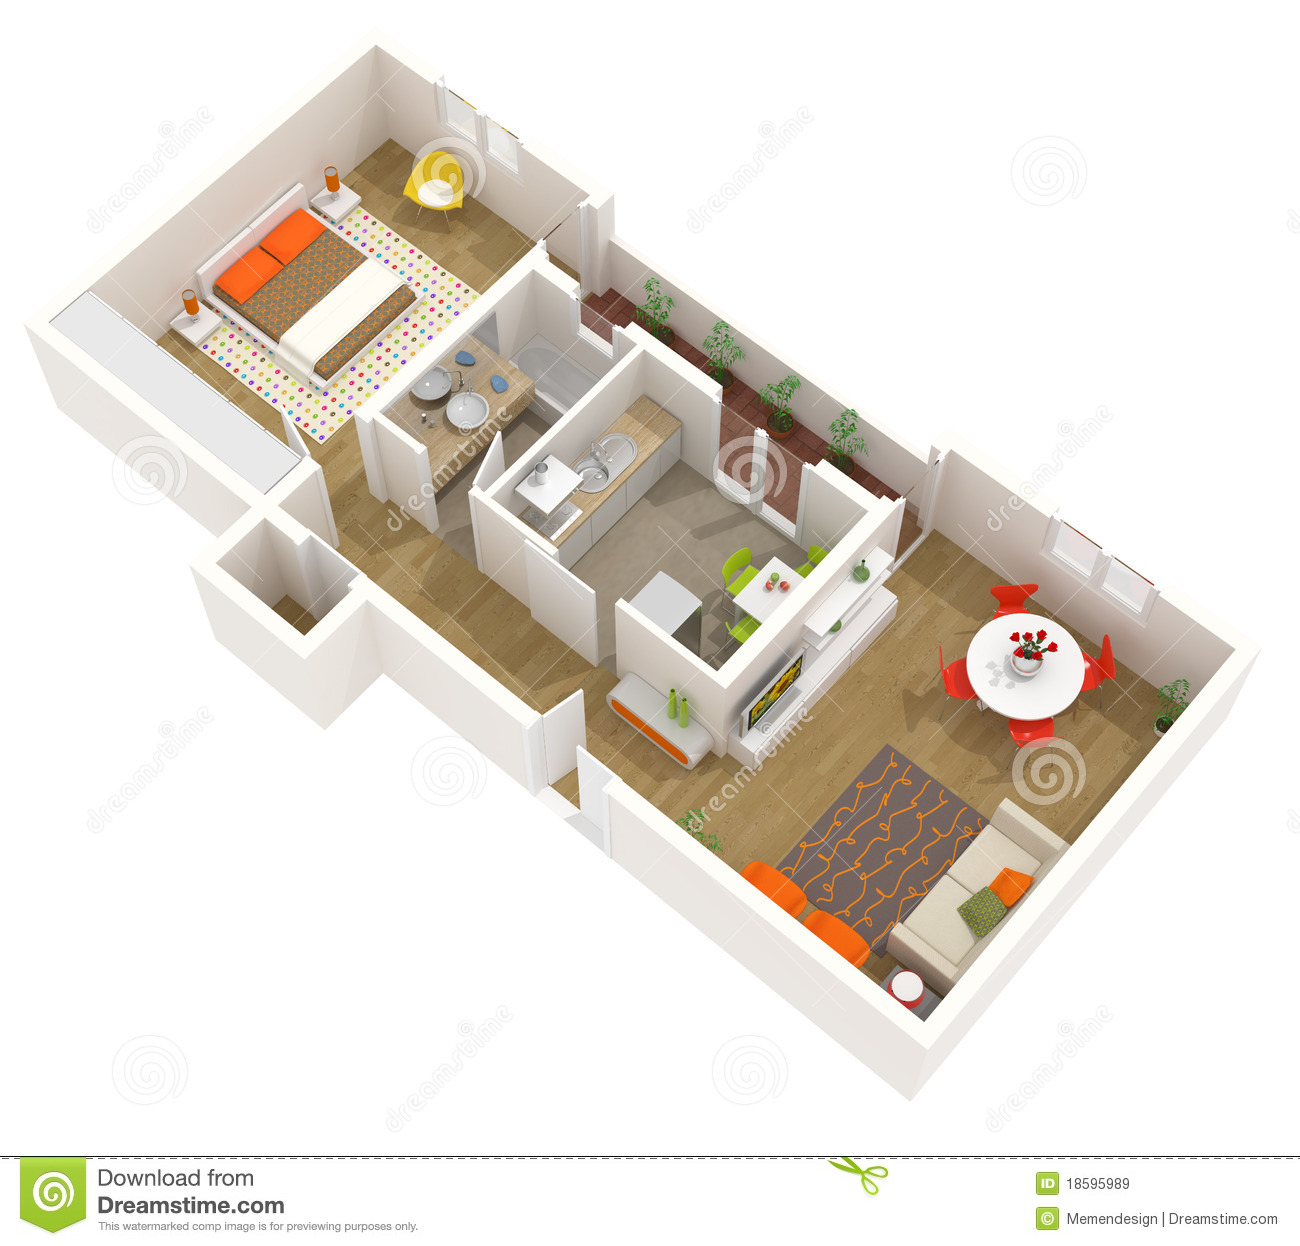 Apartment Interior Design   3d Floor Plan Stock Illustration   Illustration  Of Construction, Casual: 18595989